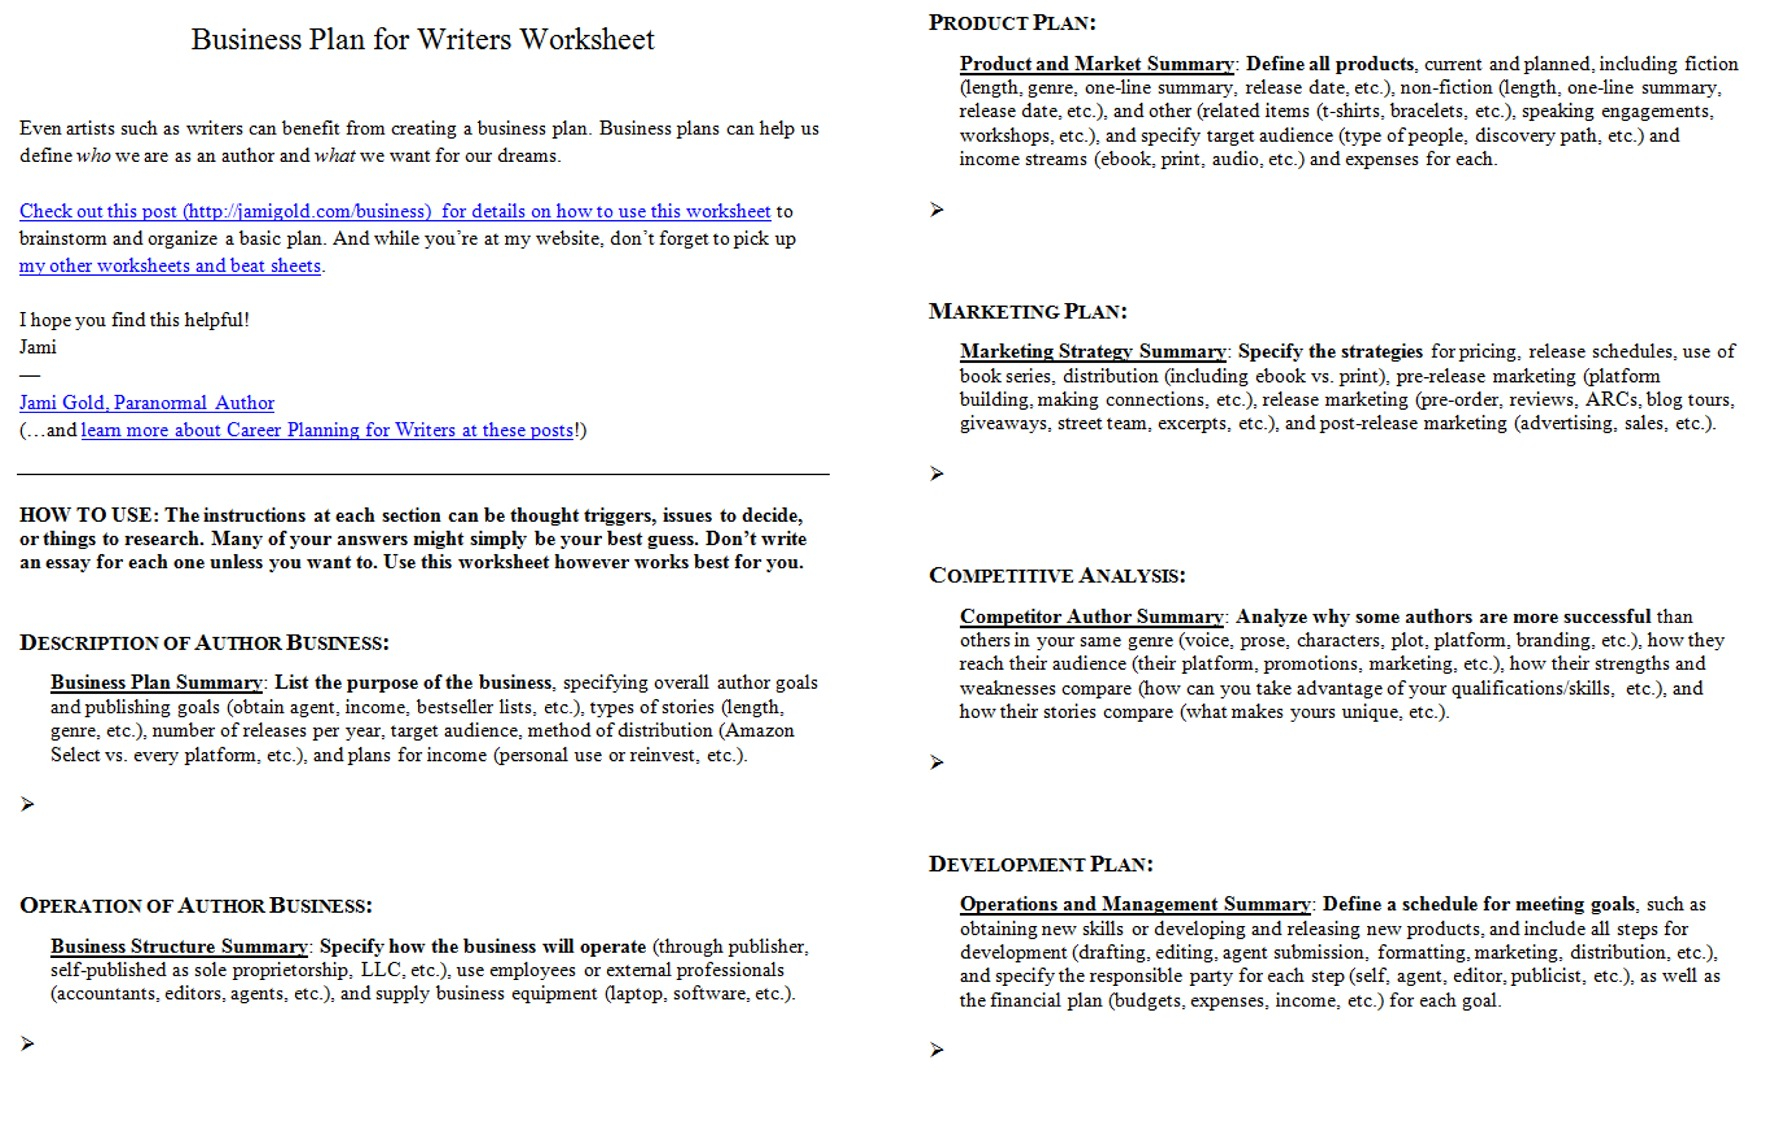 Proatmealus  Marvelous Worksheets For Writers  Jami Gold Paranormal Author With Outstanding Screen Shot Of Both Pages Of The Business Plan For Writers Worksheet With Extraordinary Characteristics Of Living Organisms Worksheets Also Worksheets On Skip Counting In Addition Adjectives Worksheet Grade  And Same Vowel Sound Worksheets As Well As Phonics Short Vowels Worksheets Additionally  Times Tables Worksheets From Jamigoldcom With Proatmealus  Outstanding Worksheets For Writers  Jami Gold Paranormal Author With Extraordinary Screen Shot Of Both Pages Of The Business Plan For Writers Worksheet And Marvelous Characteristics Of Living Organisms Worksheets Also Worksheets On Skip Counting In Addition Adjectives Worksheet Grade  From Jamigoldcom